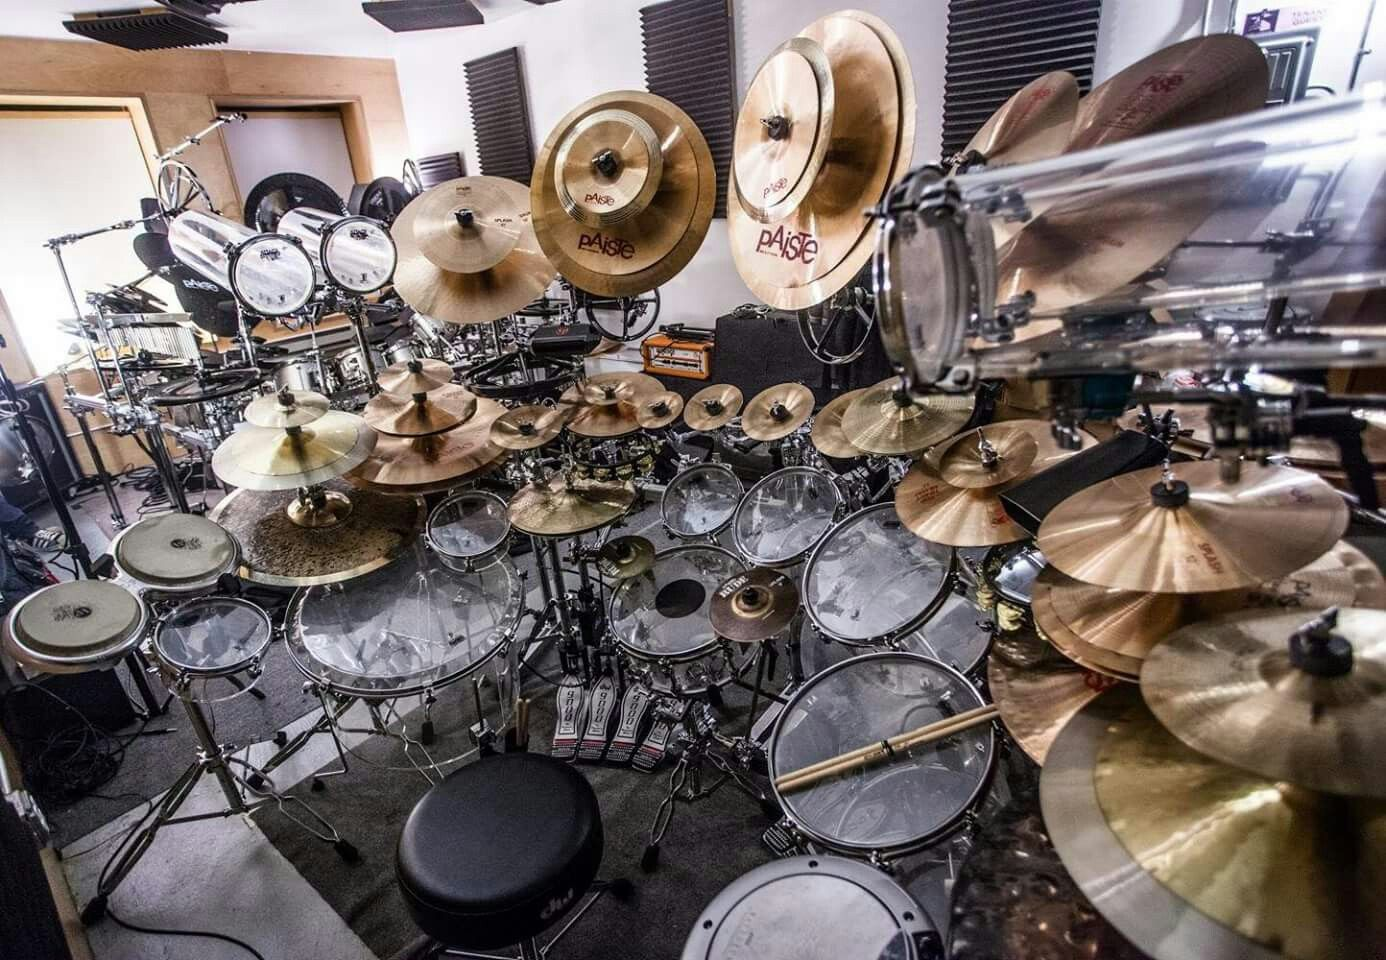 Pin By Terry Nugent On Drums Drums Drum Kits Full Drum Set